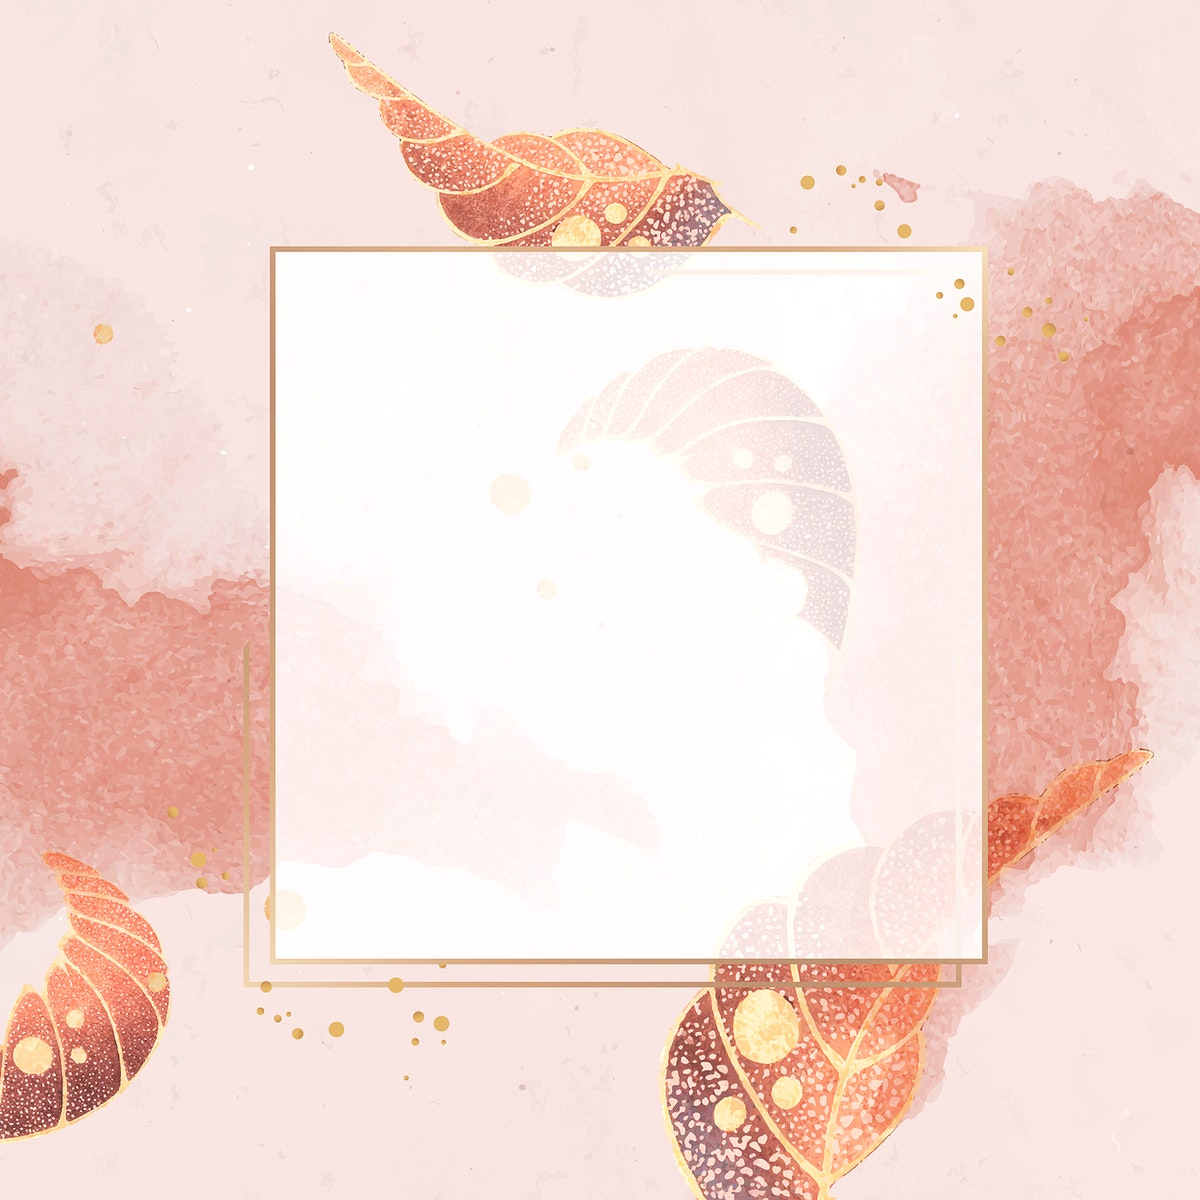 Gold square frame with vintage leaf motifs on a peach background vector